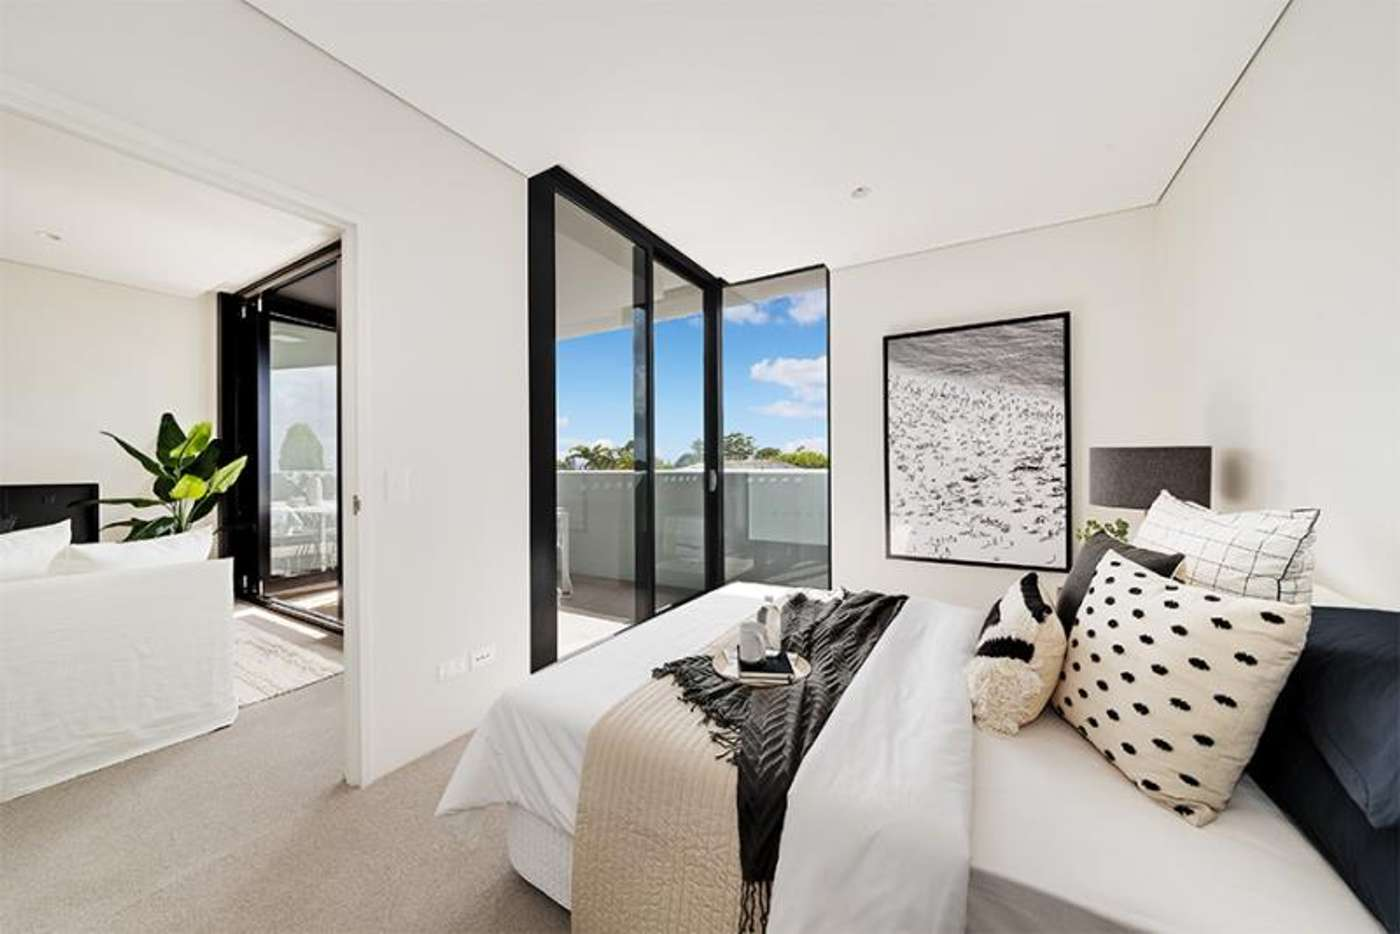 Main view of Homely apartment listing, H1, G04/62 Mobbs Lane, Eastwood NSW 2122